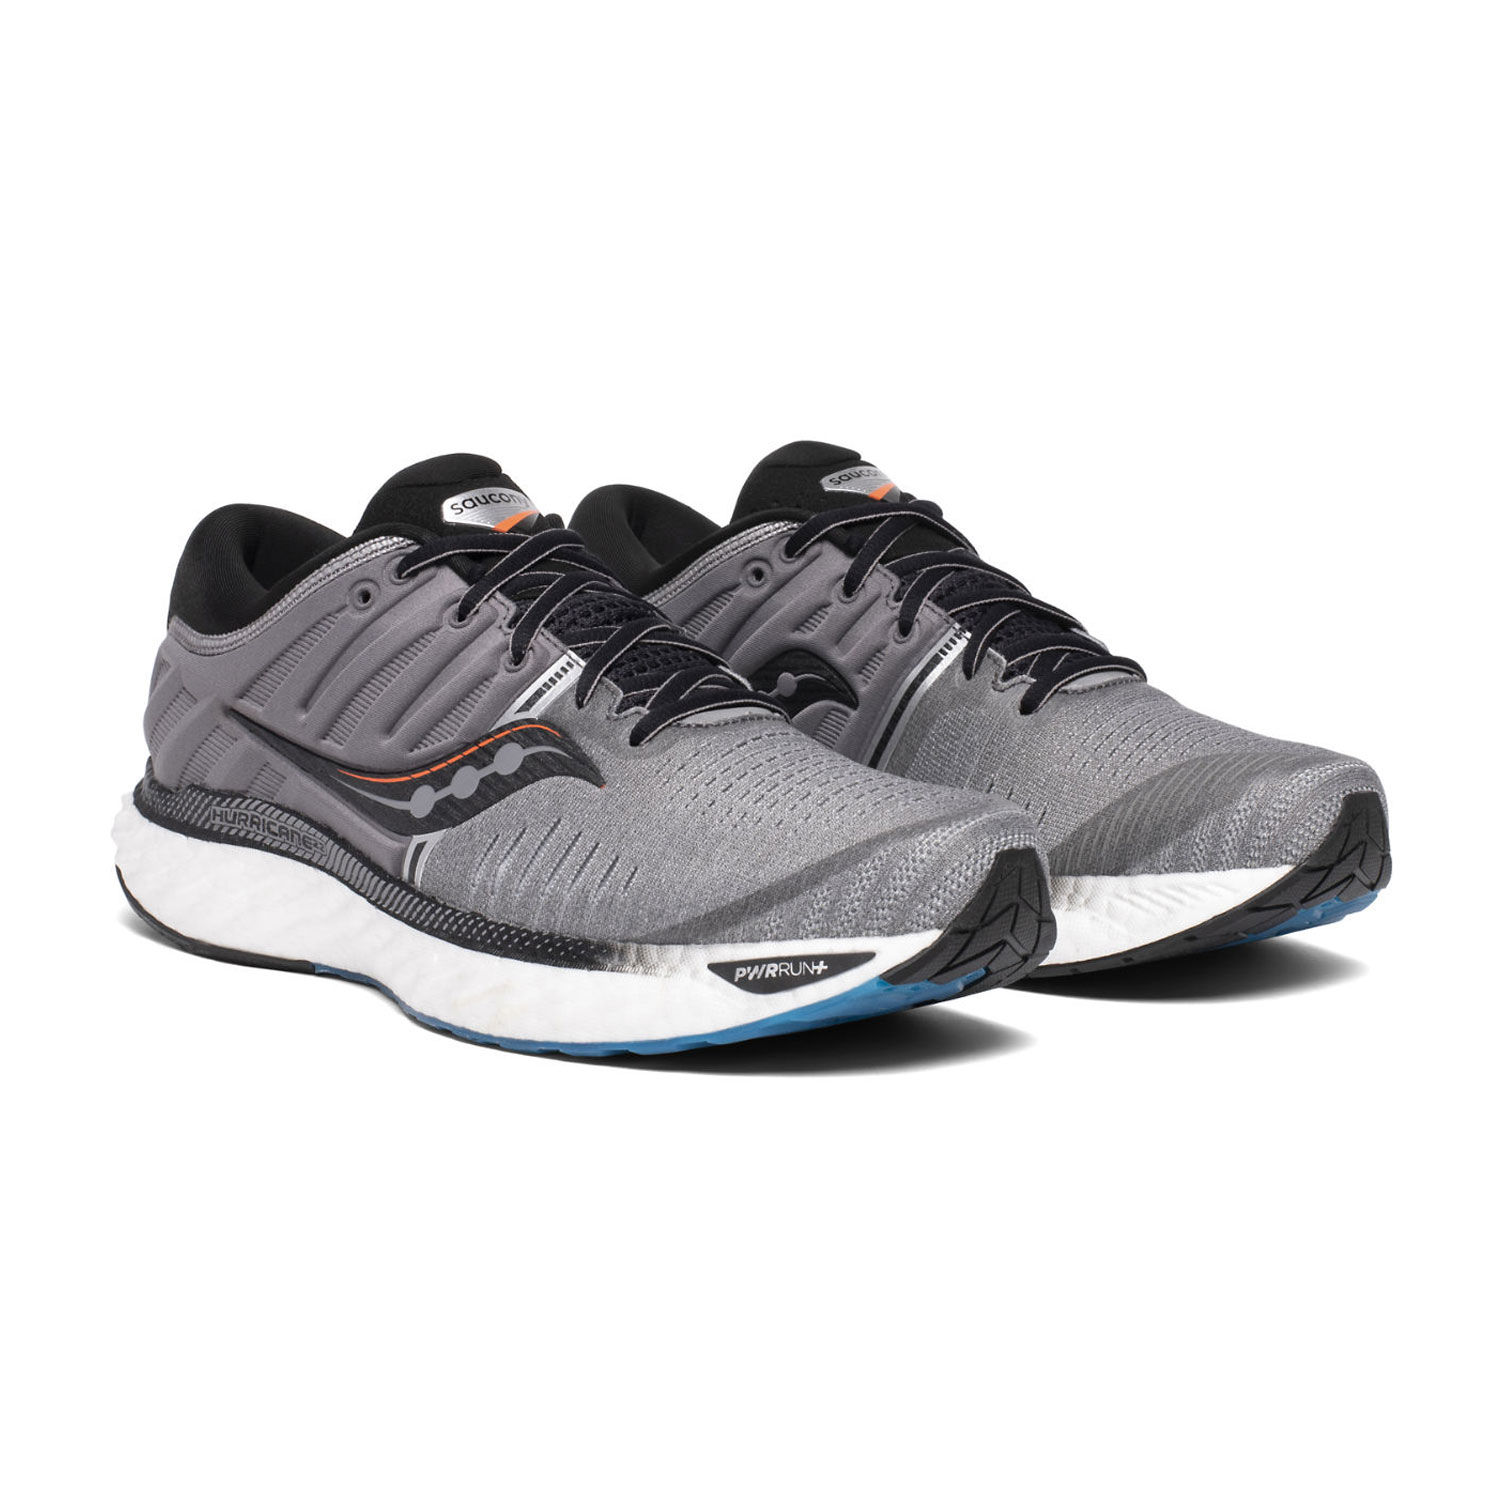 Saucony Hurricane 22 - Grey/Black